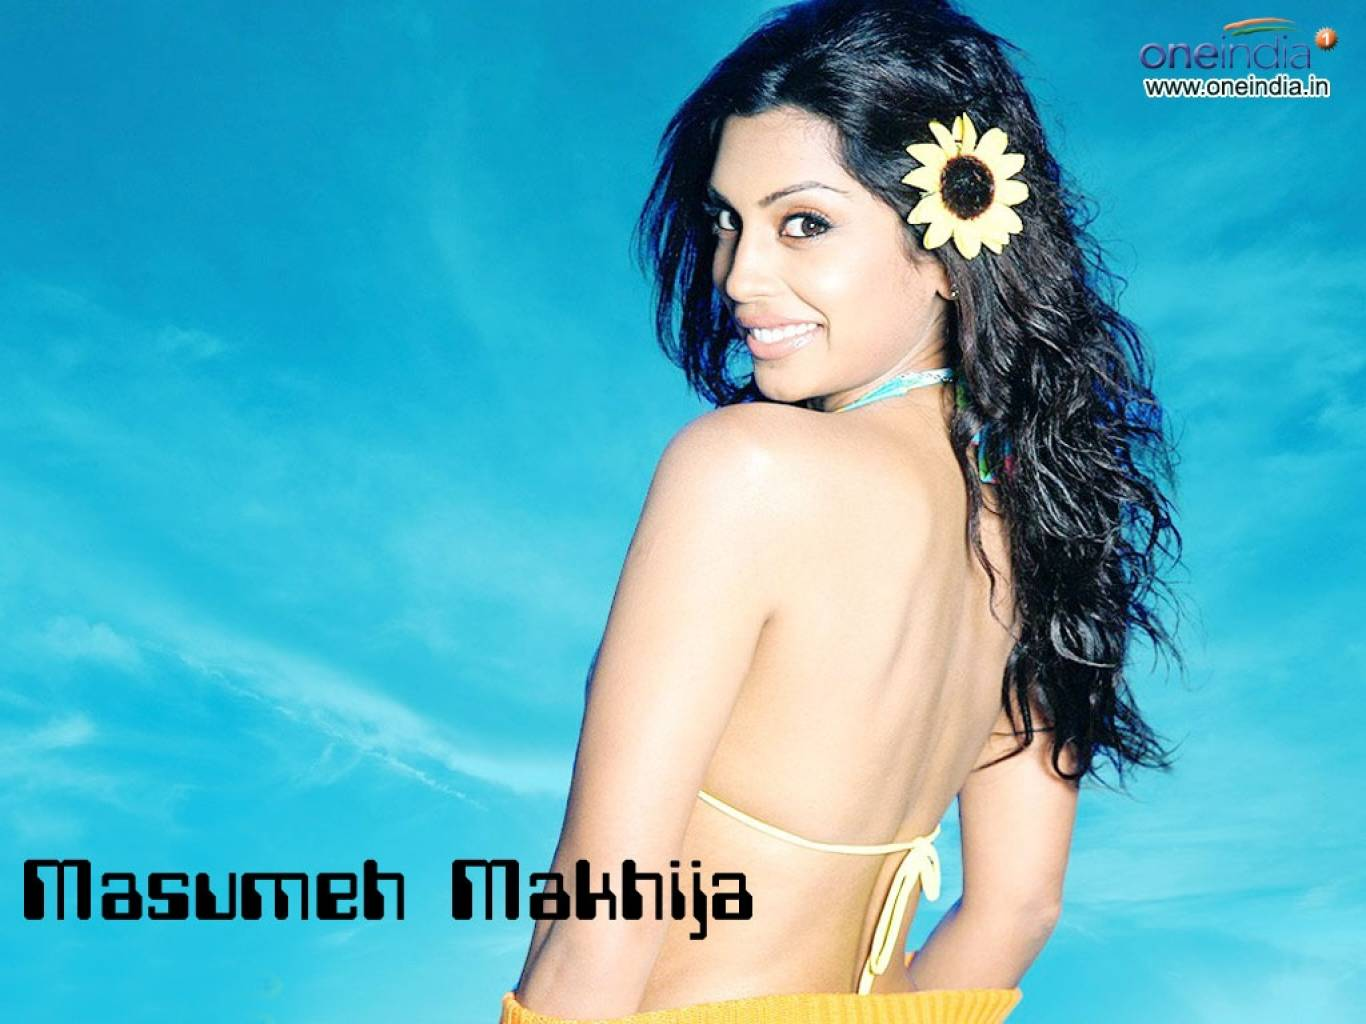 Masumeh Makhija Wallpapers